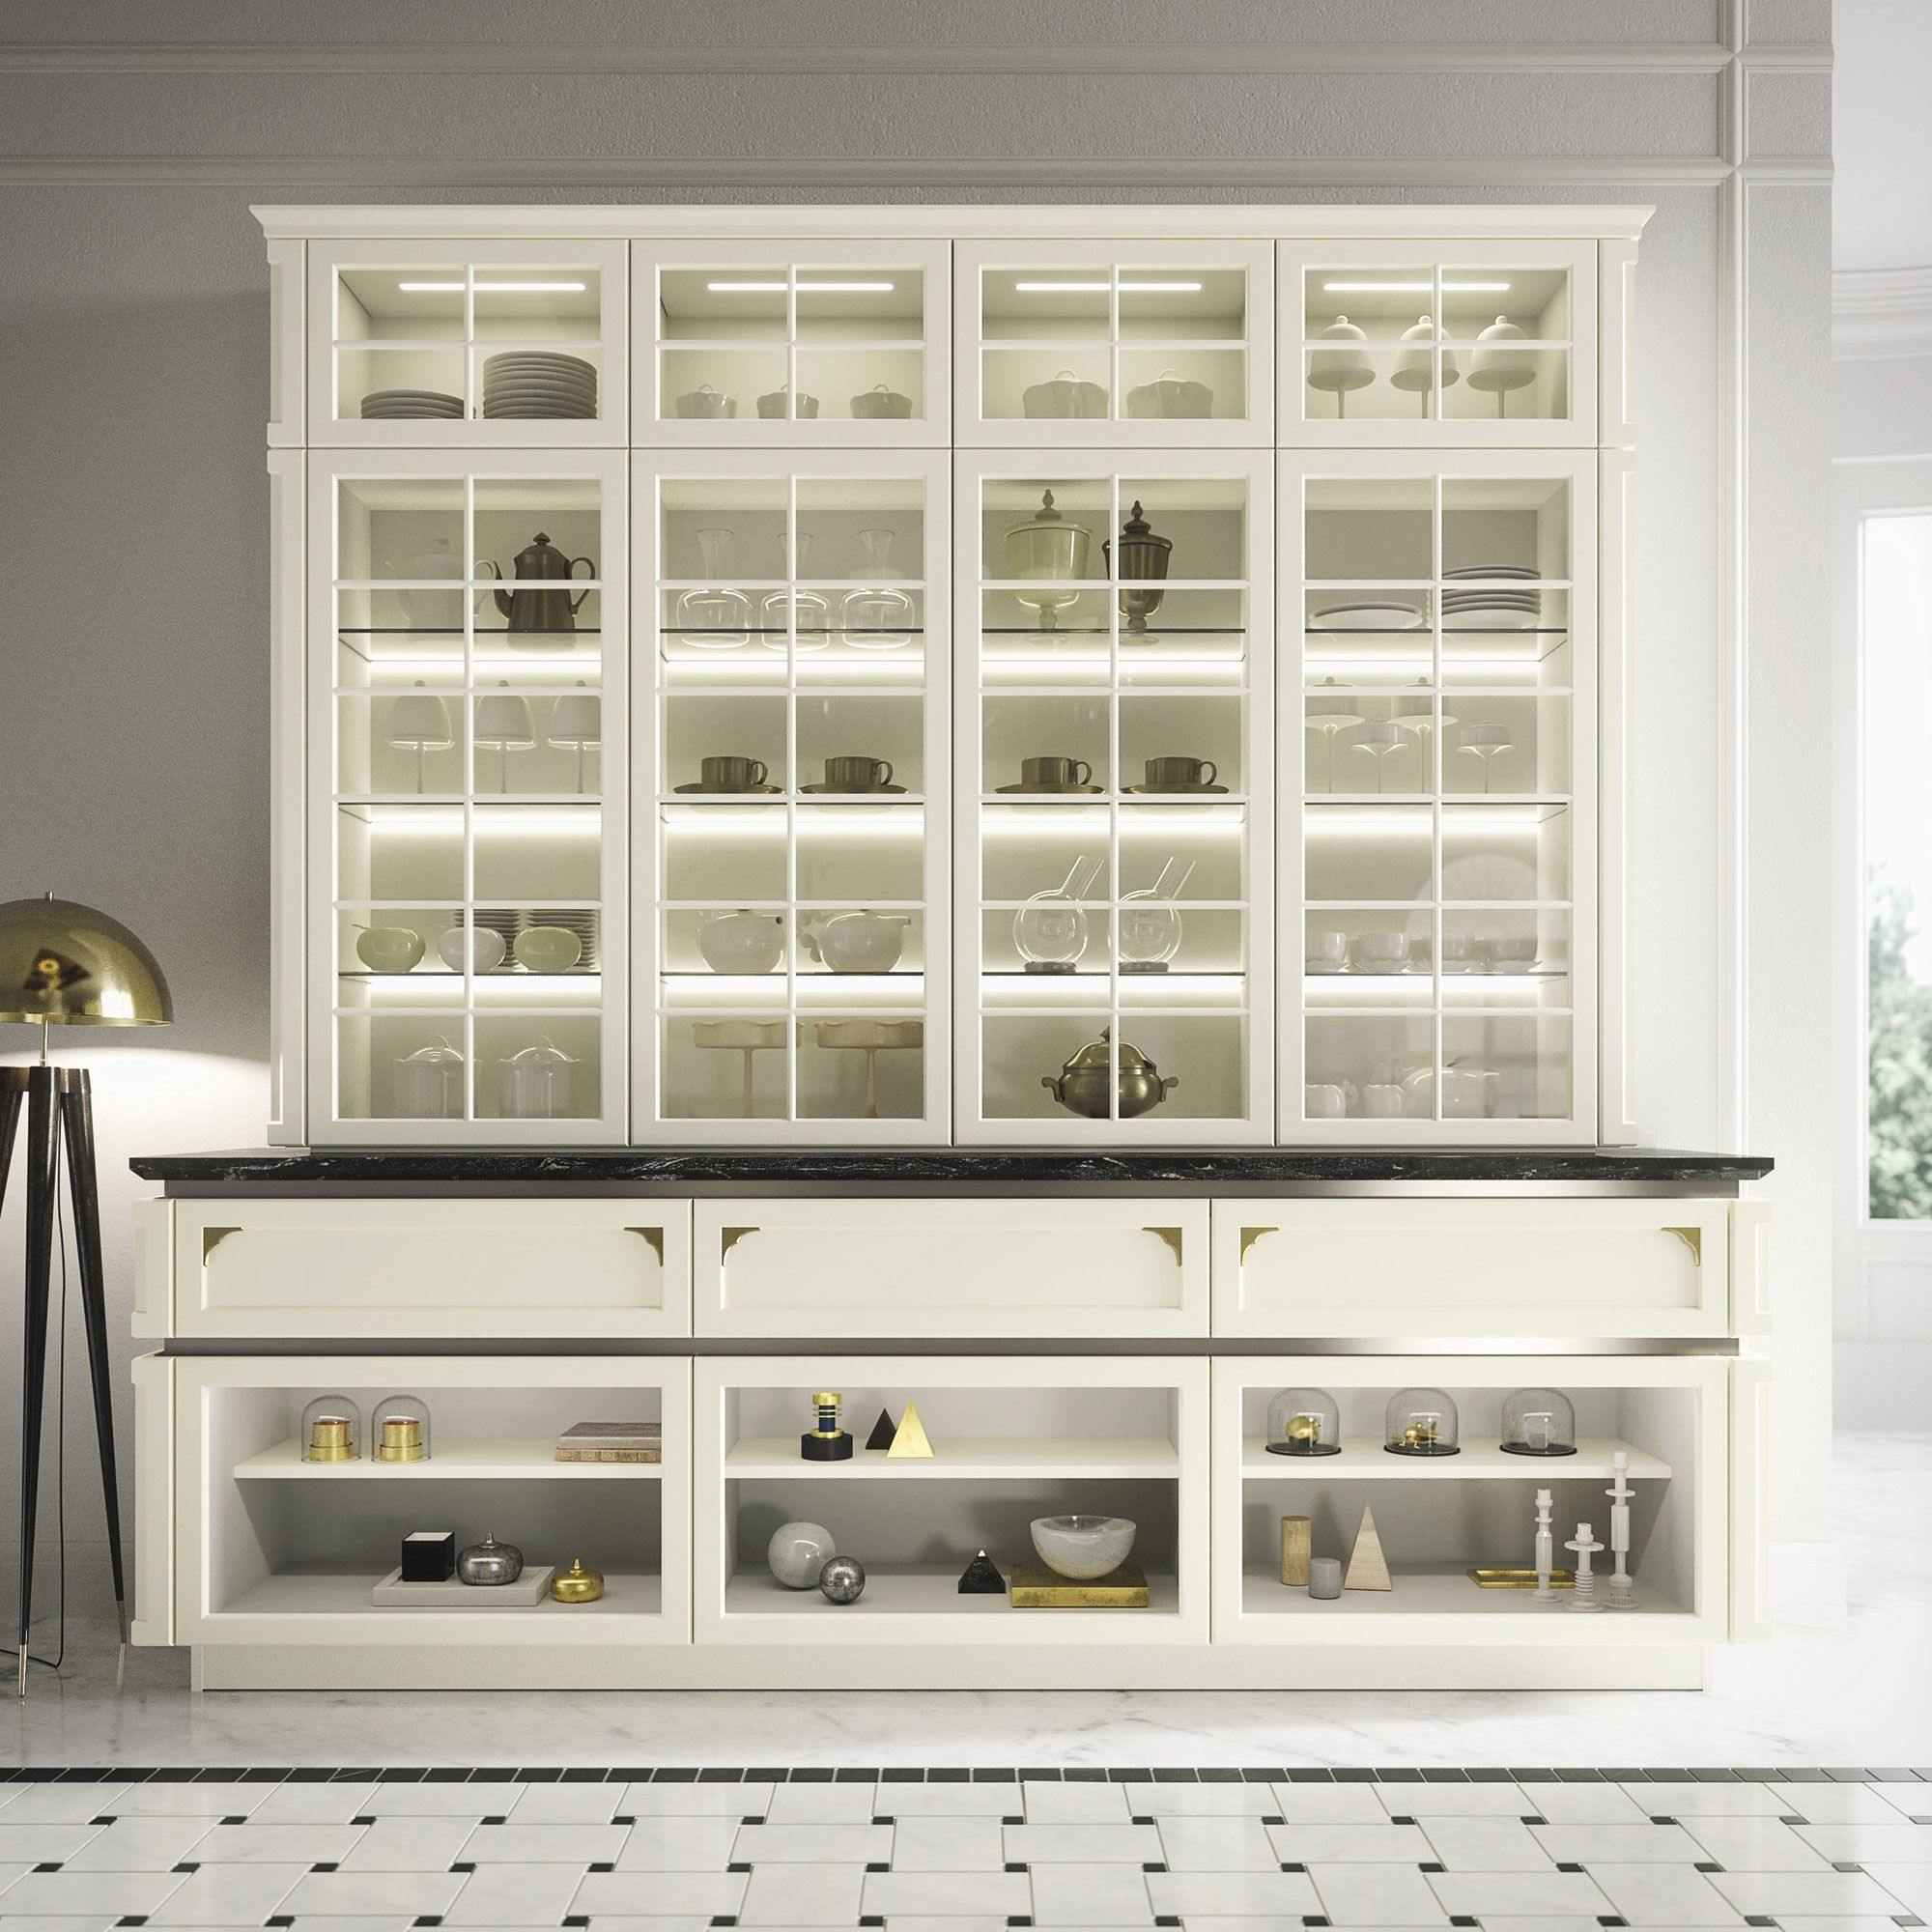 Snaidero KELLY Glass Wall Sideboard Units Are Both Elegant